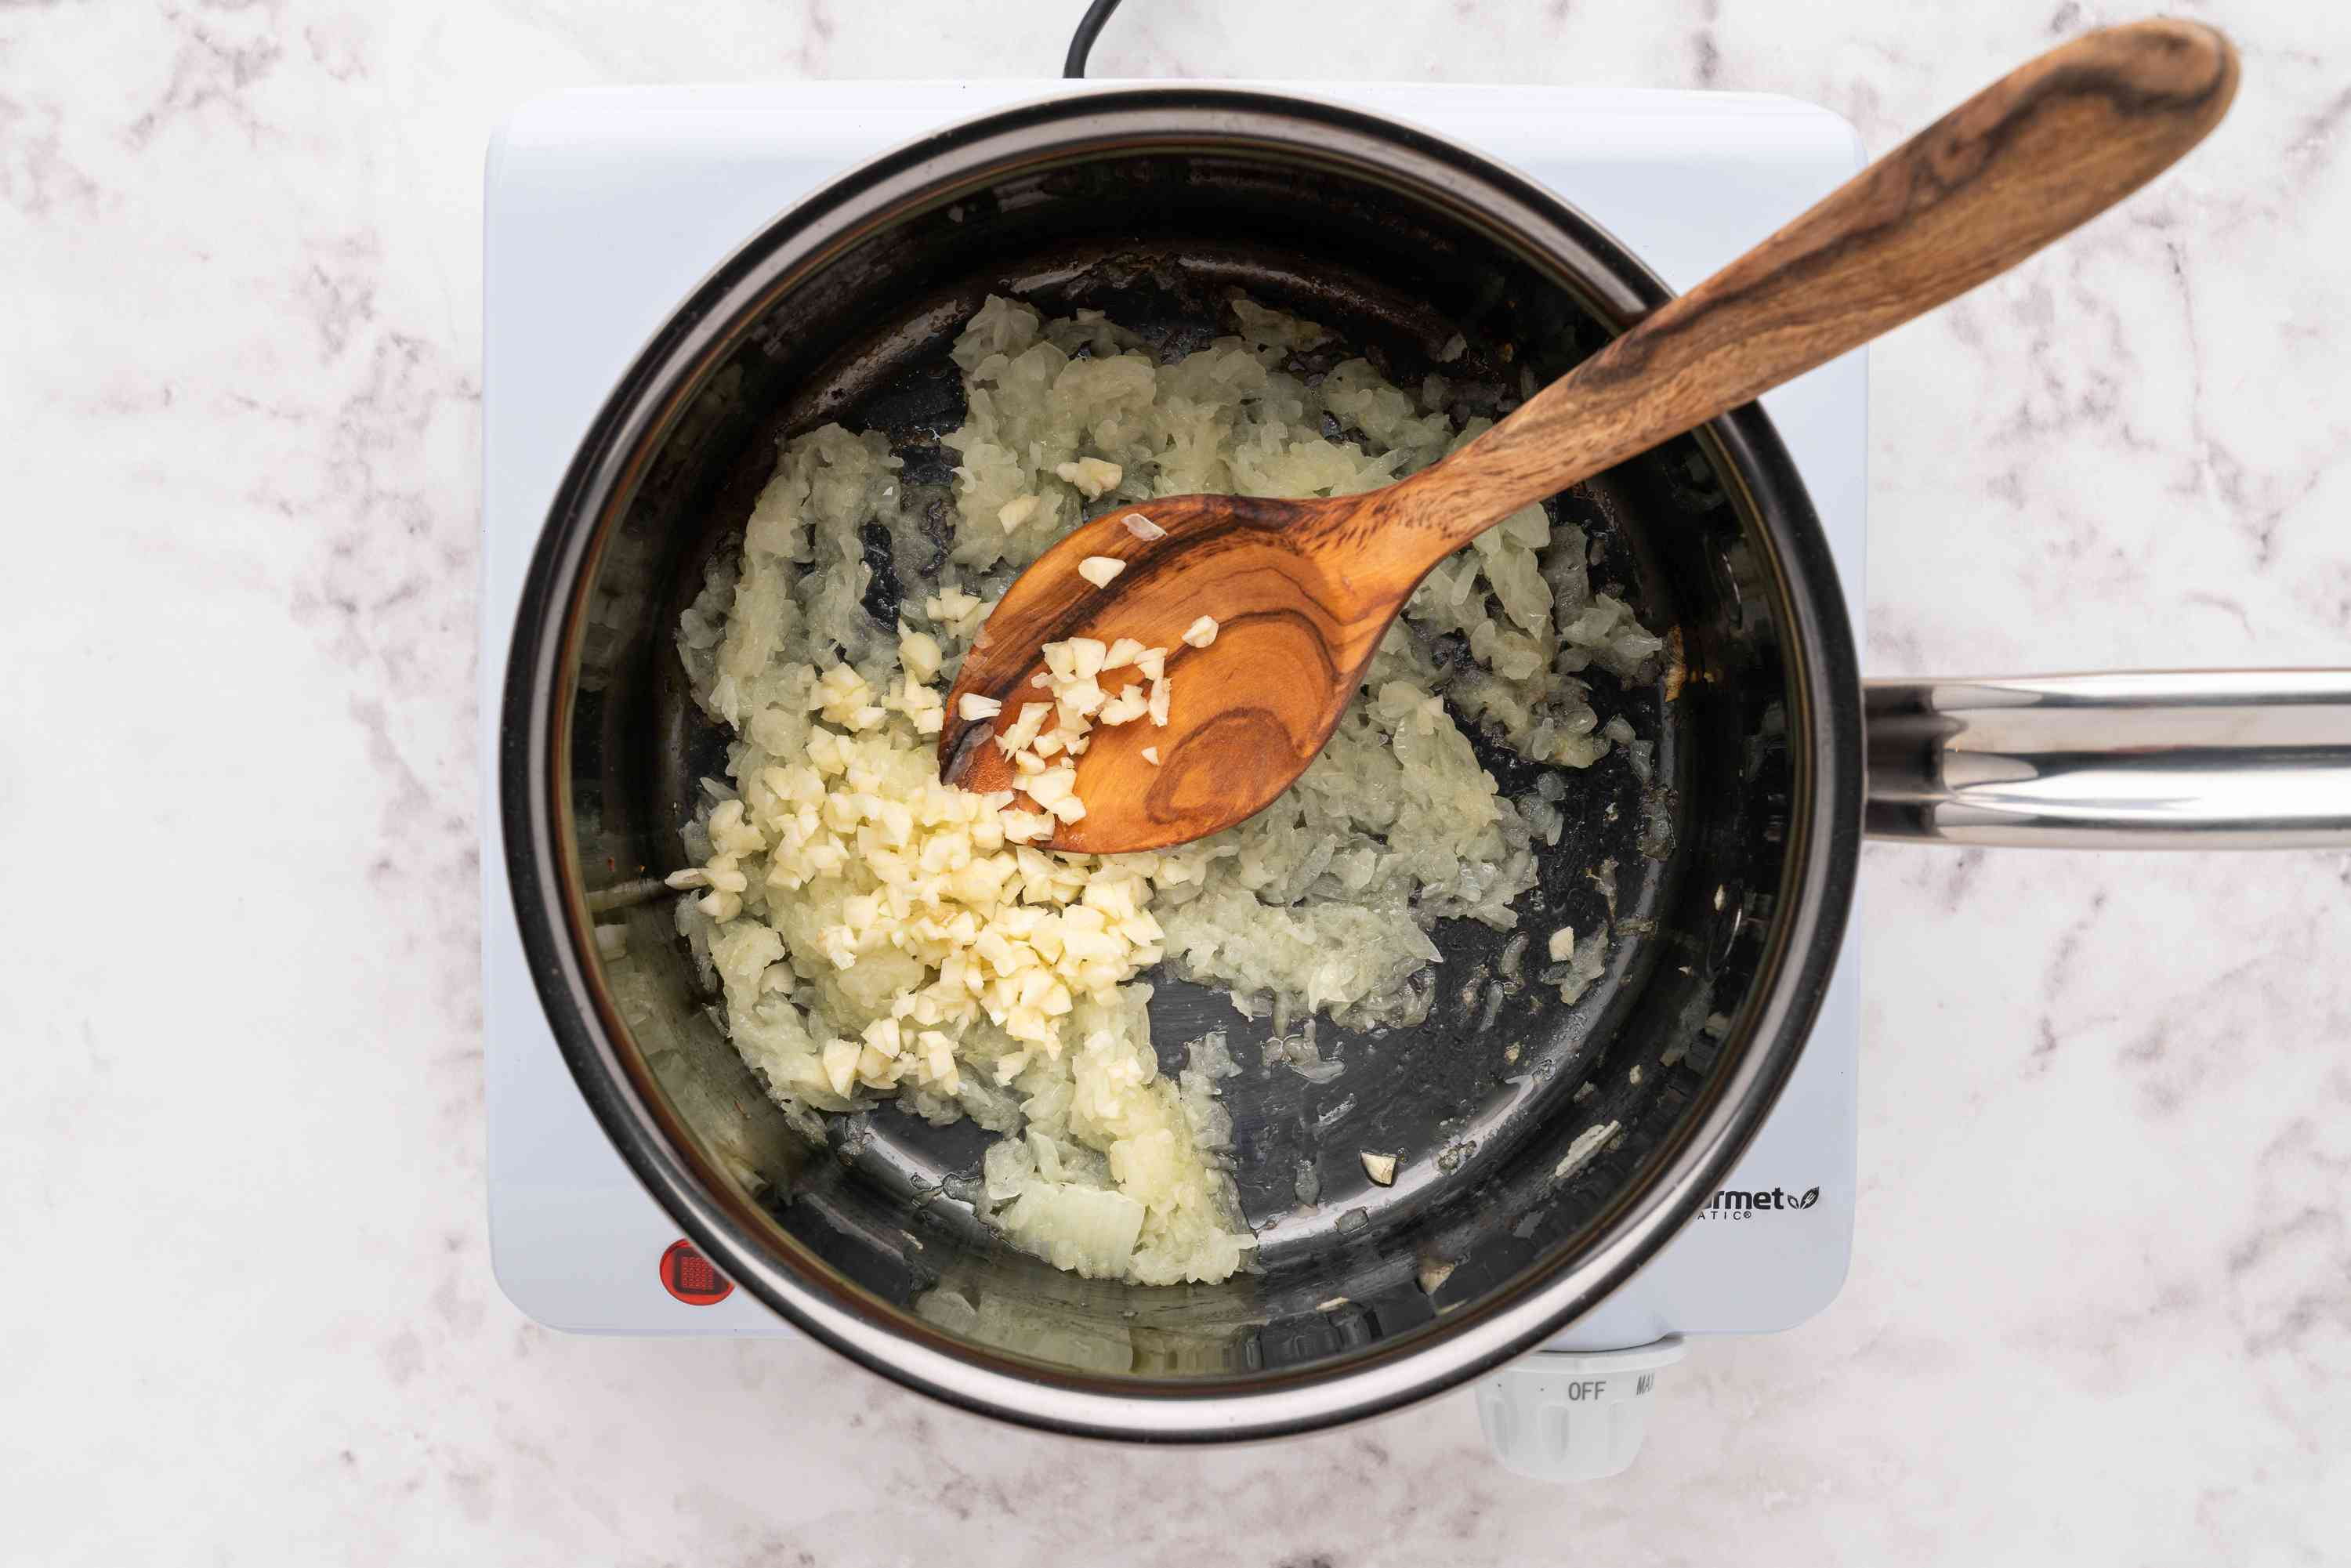 garlic and onions cooking in a saucepan